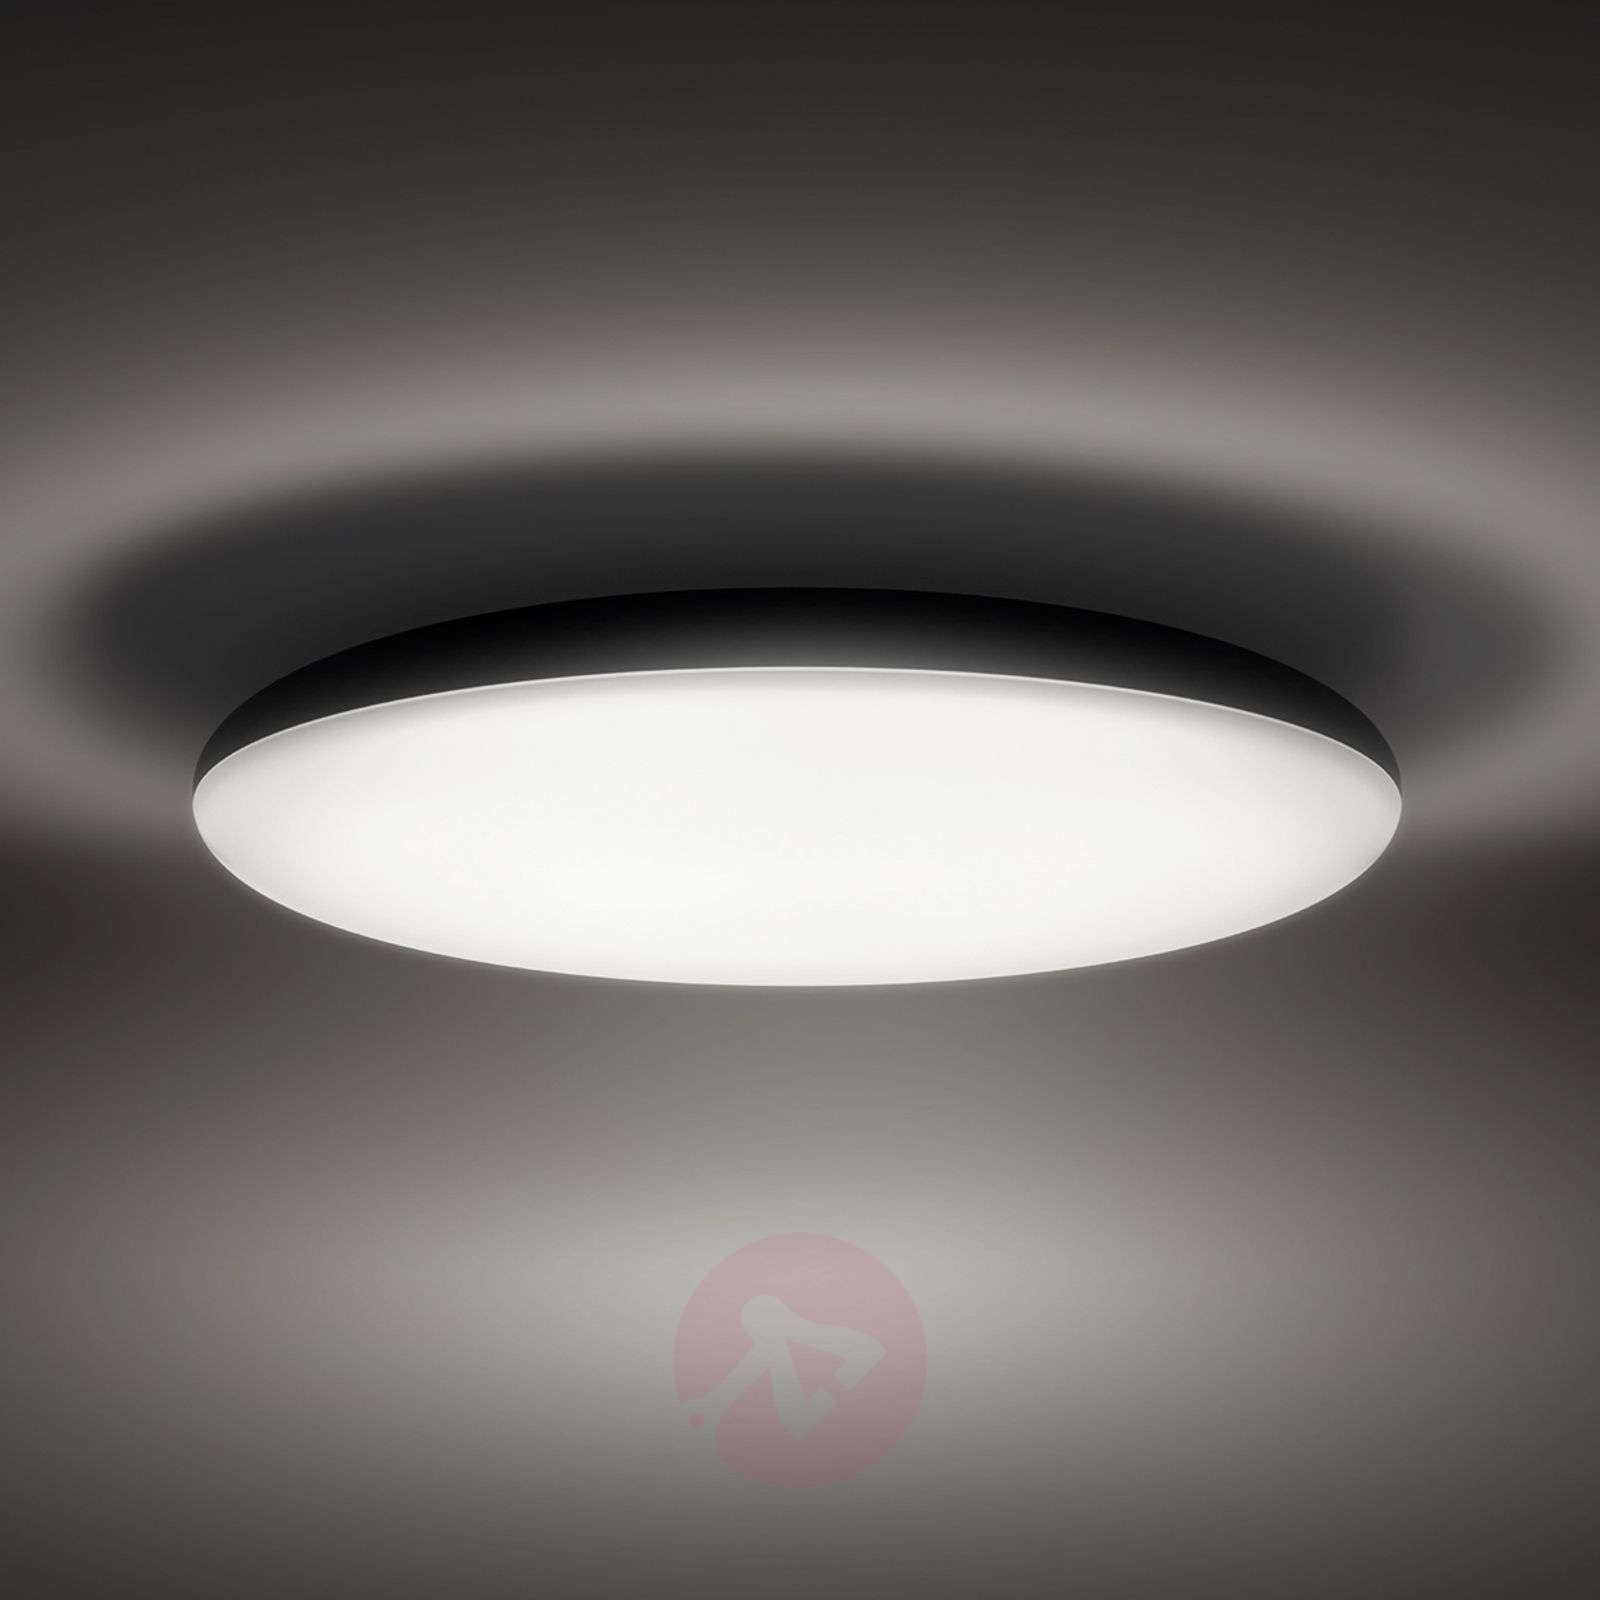 Philips Hue Led Ceiling Light Cher With Dimmer Lights Ie